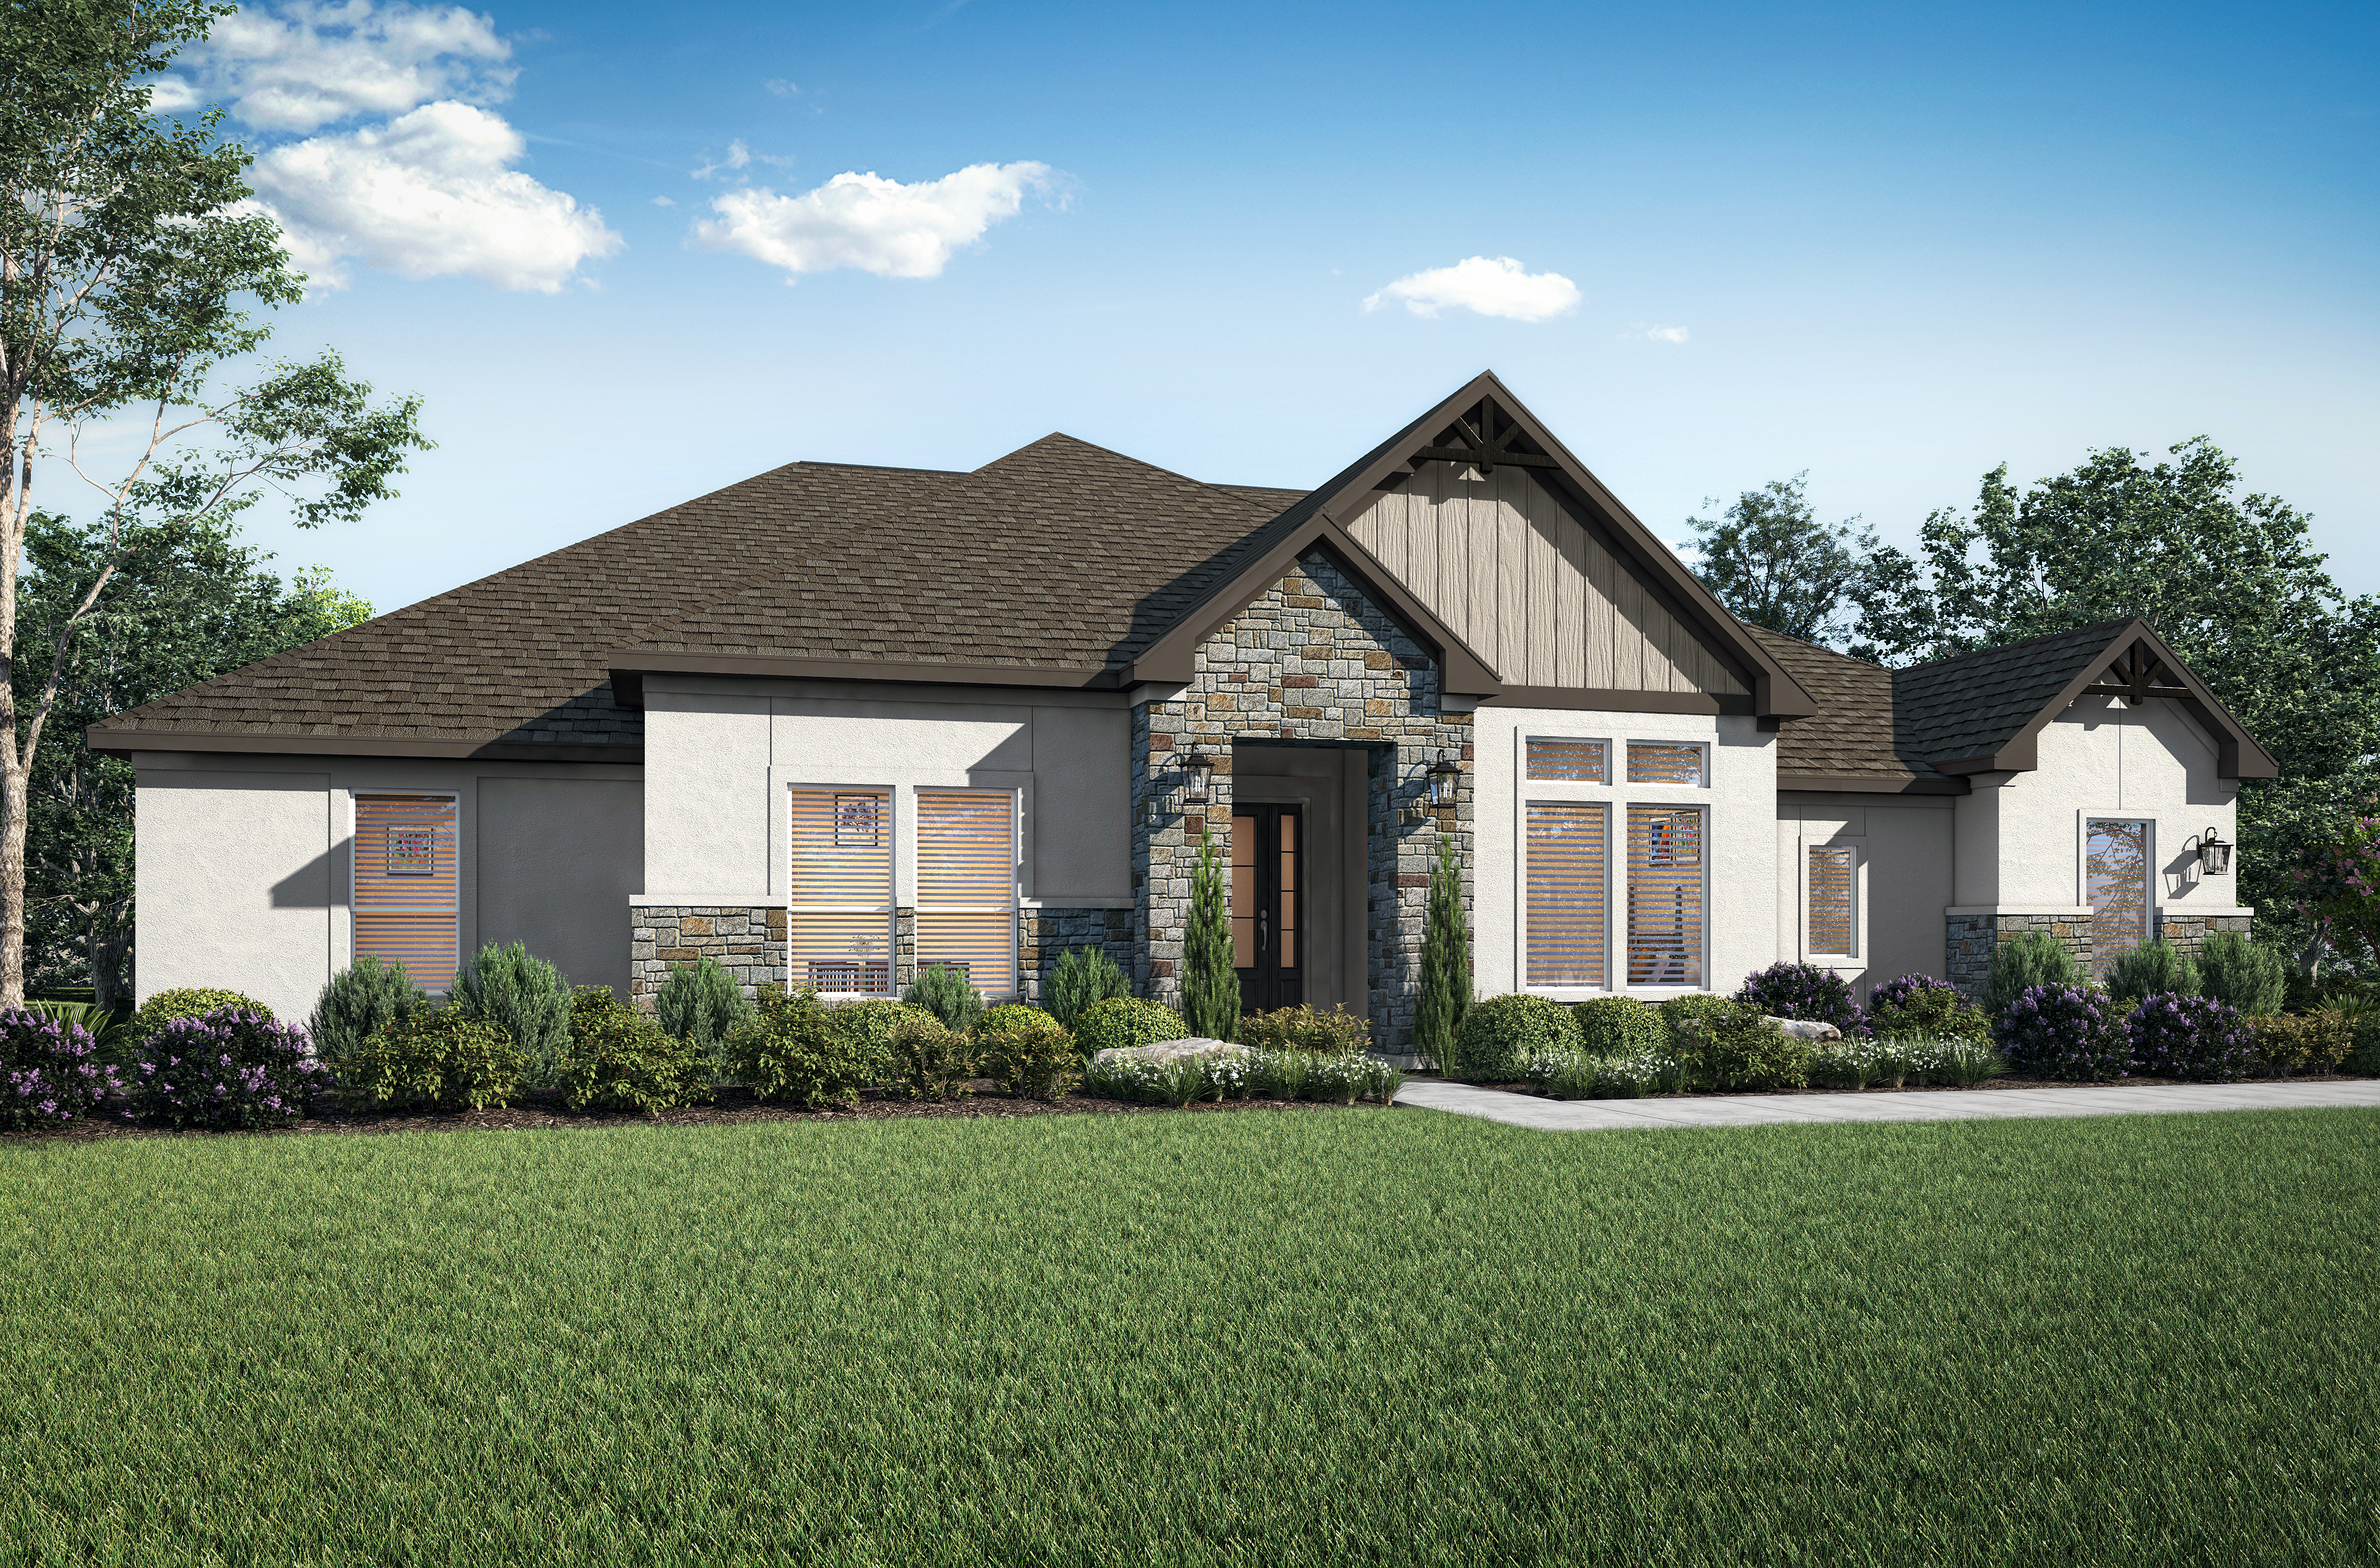 The Stratton plan is available now at Spicewood Trails by Terrata Homes.